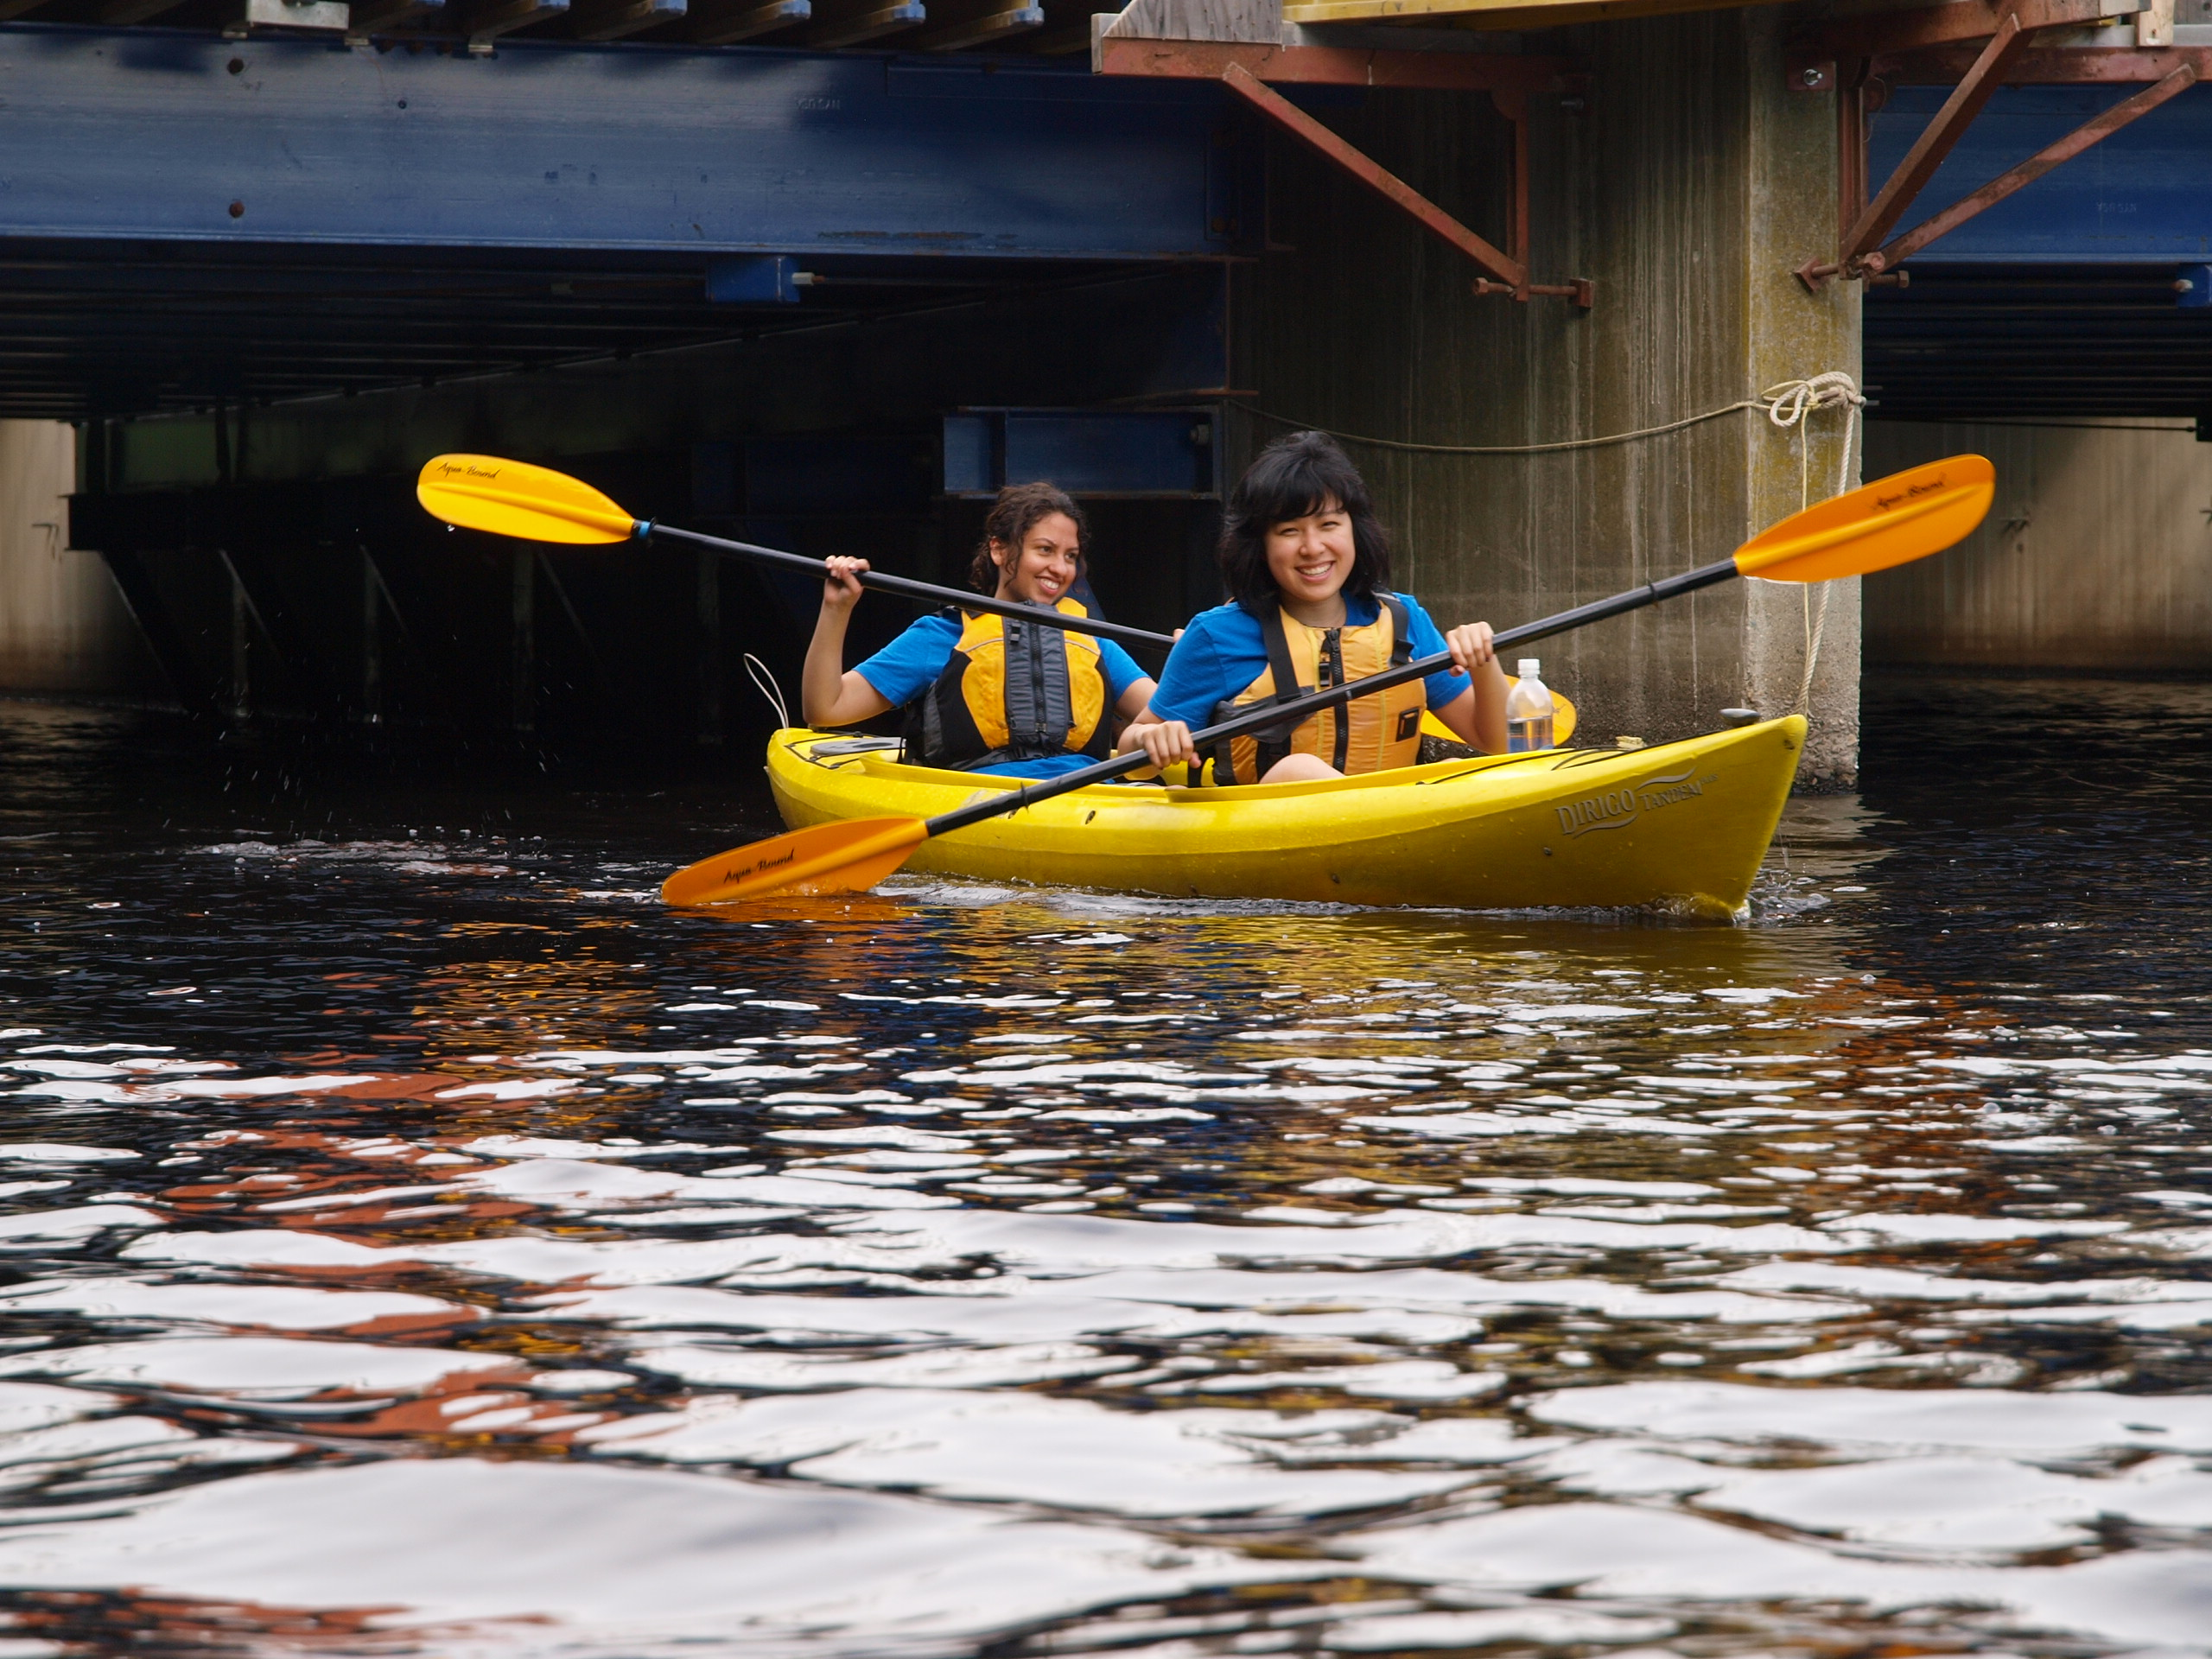 Emily_and_Sofia_making_their_way_along_the_Charles_River_in_their_kayak._(7374951574)